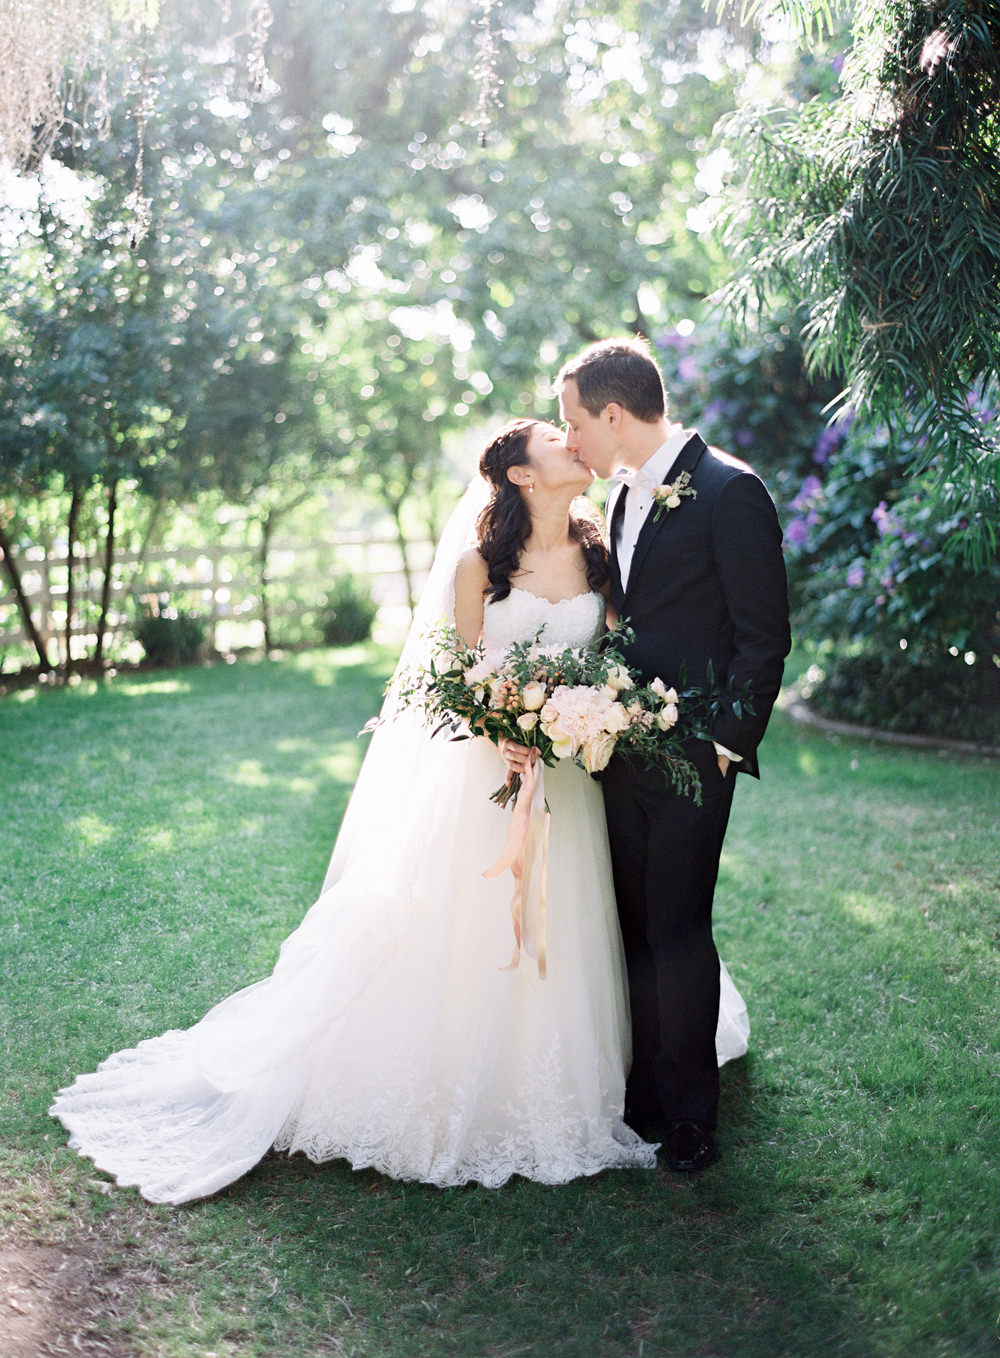 RomanticGardenWedding_WhiskersandWillow_087.jpg